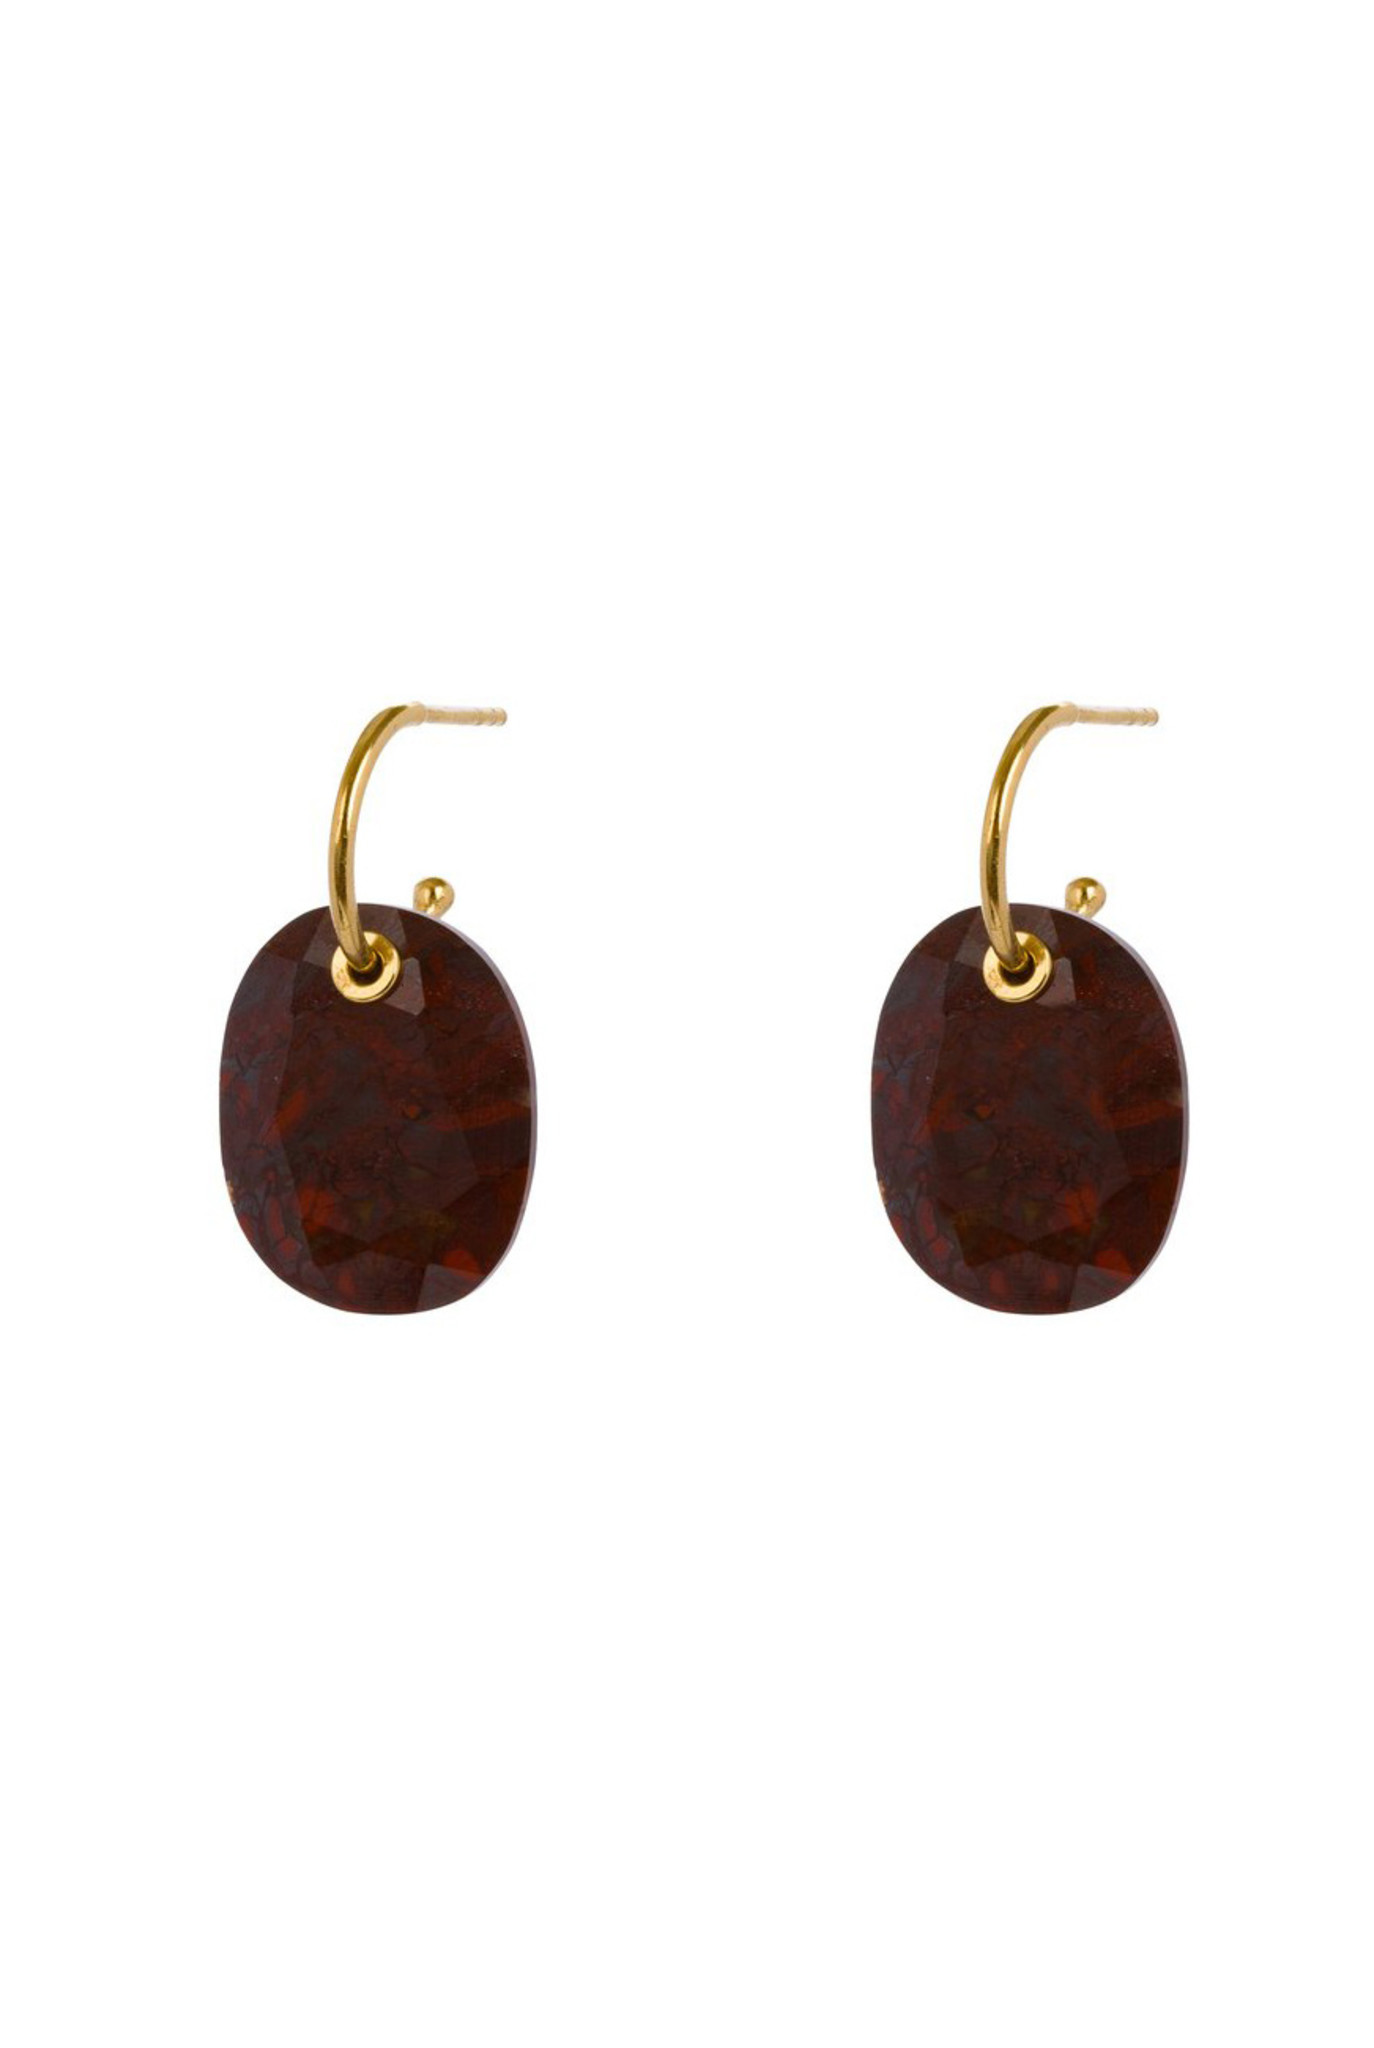 Red moss agate earrings gold plated